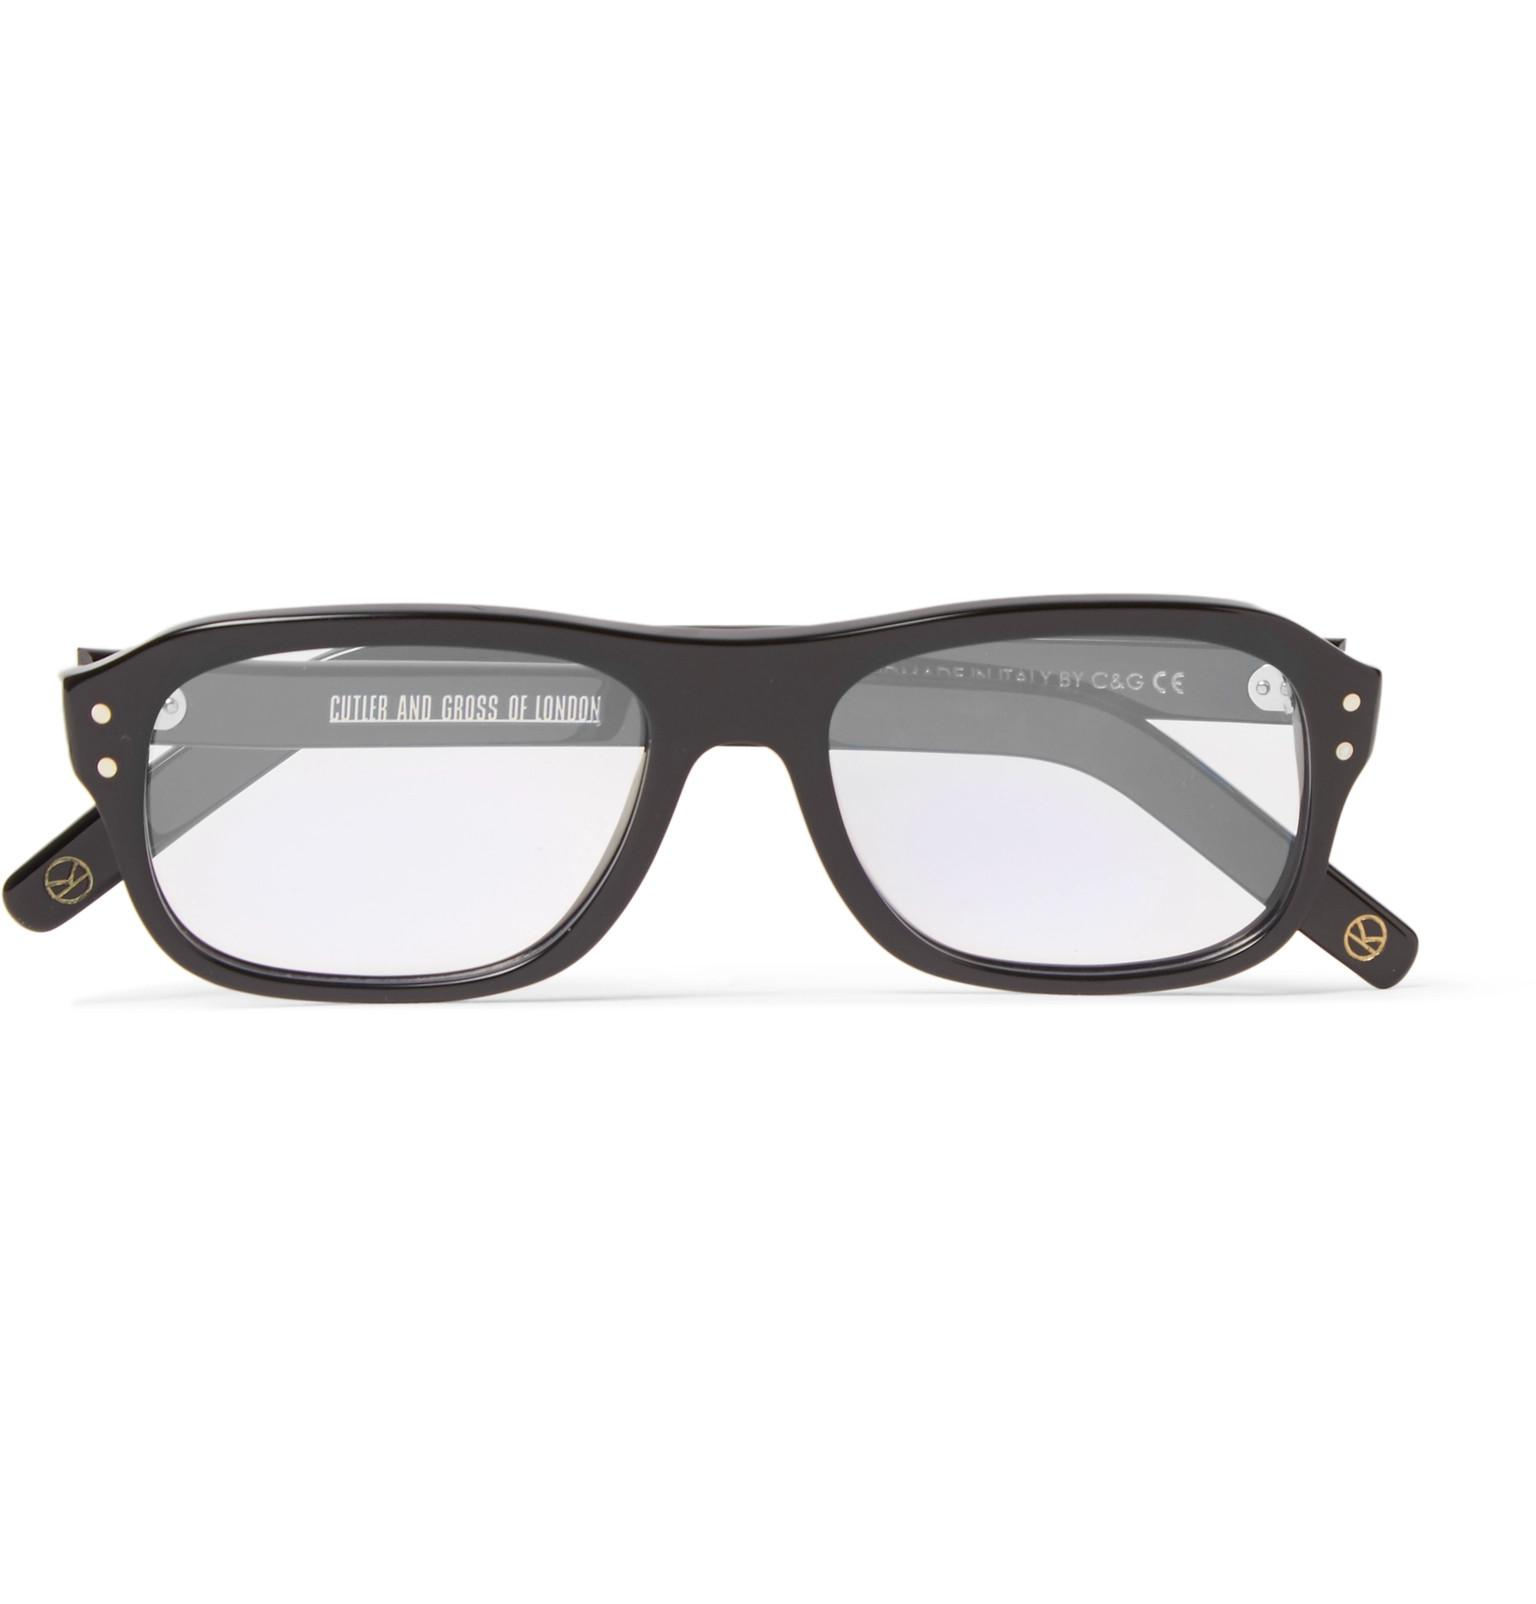 490e149e898 Lyst - Kingsman + Cutler And Gross Eggsy s Square-frame Acetate ...